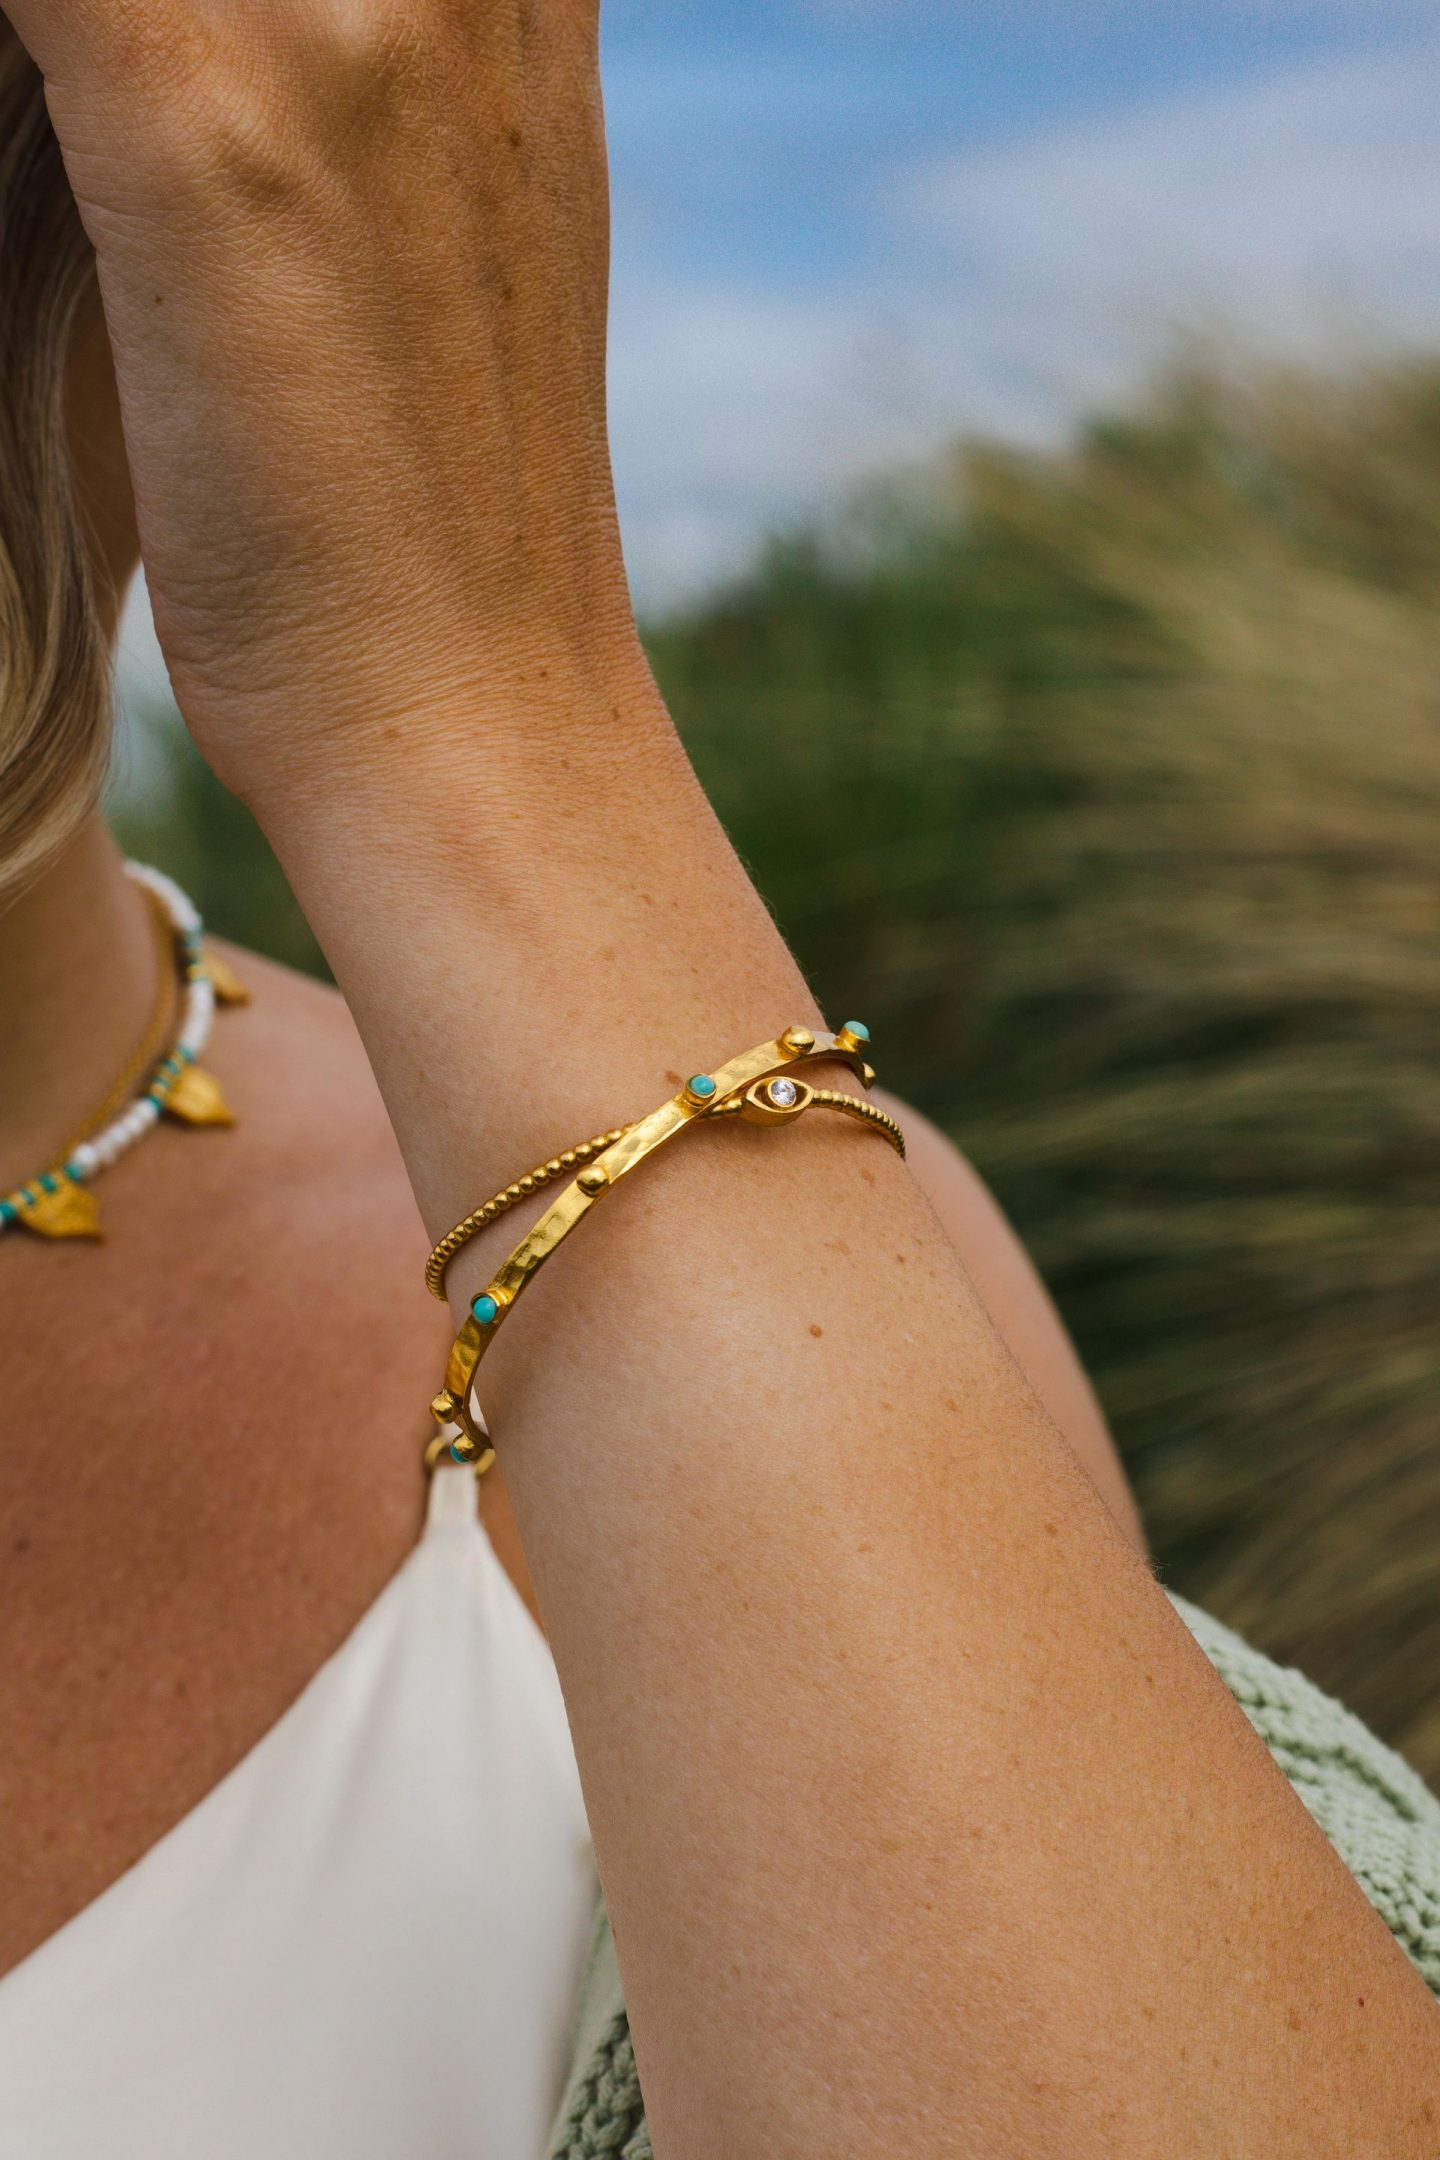 Ottoman Hands Jewellery. Tanrica Gold bangle with Turquoise Beads and Cielo Eye Bracelet white crystal